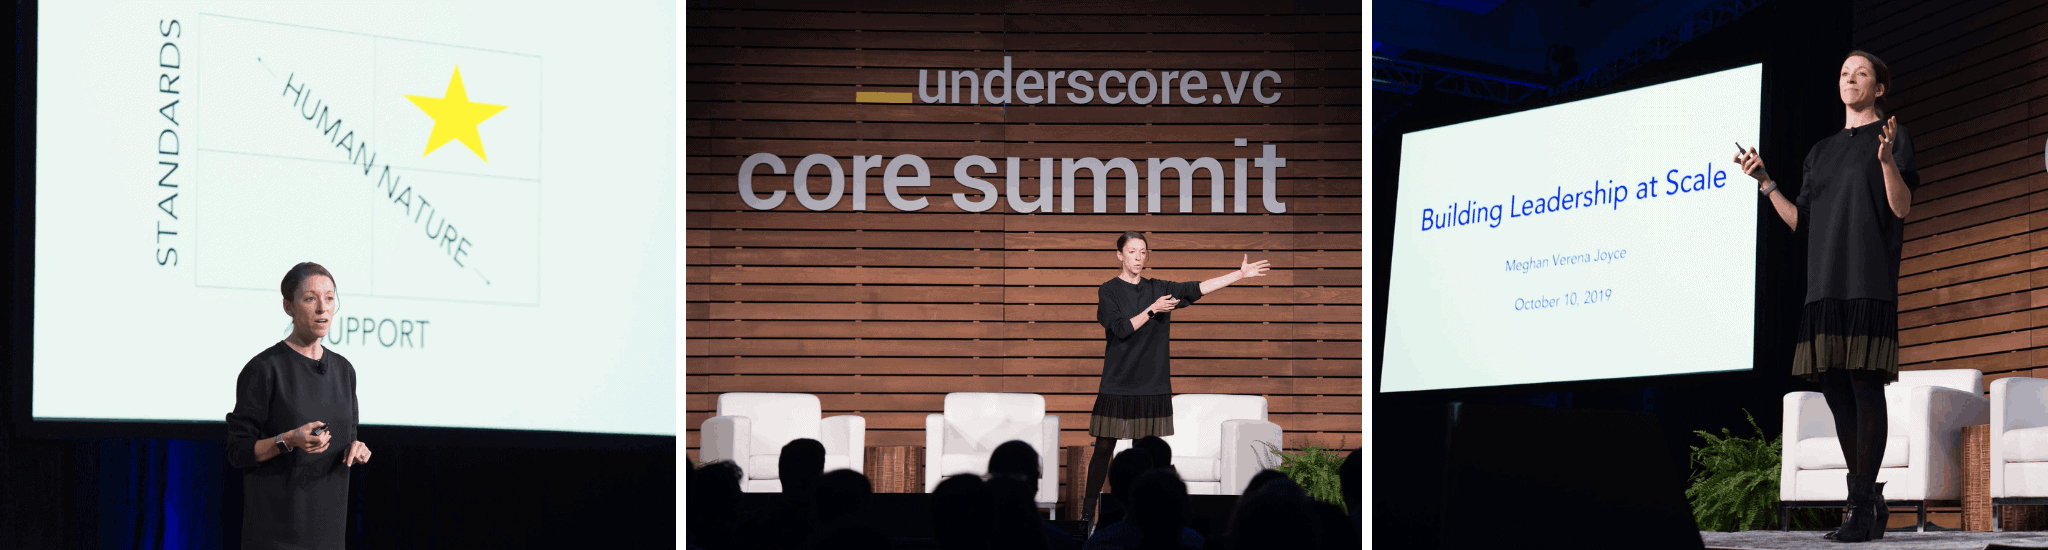 Meghan Joyce Speaking at Core Summit 2019